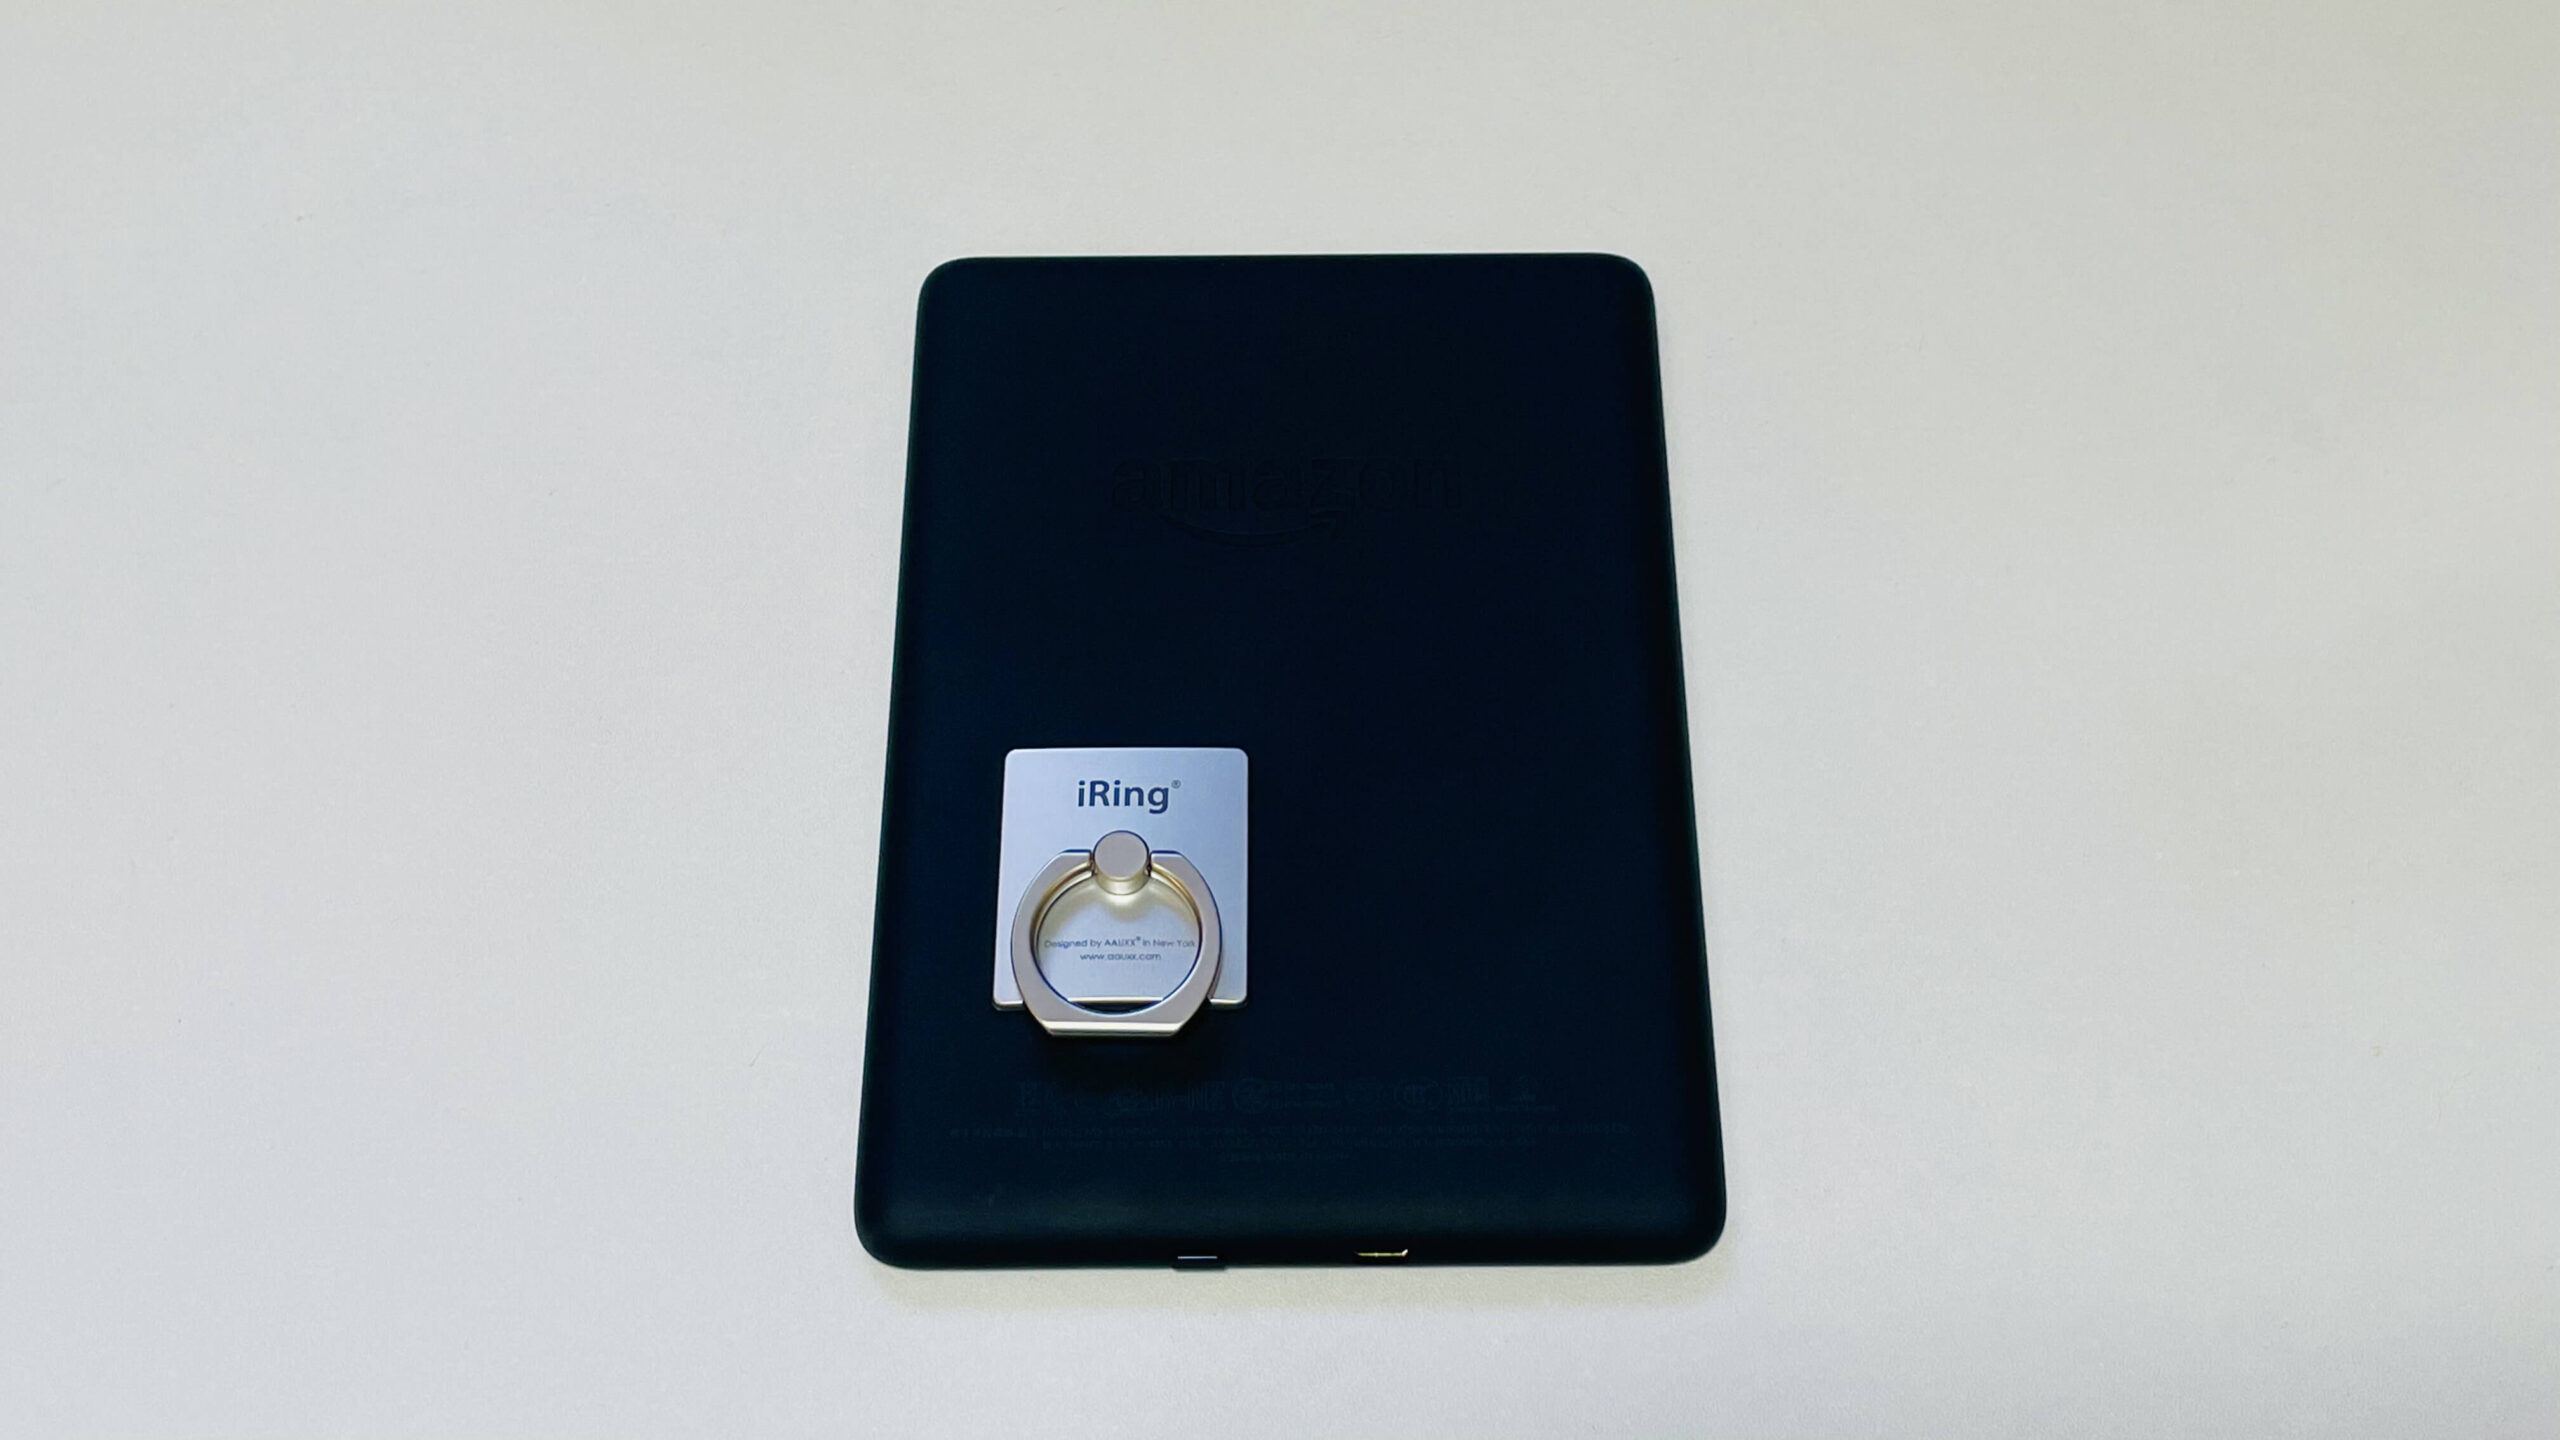 Kindleに取り付けたiRing